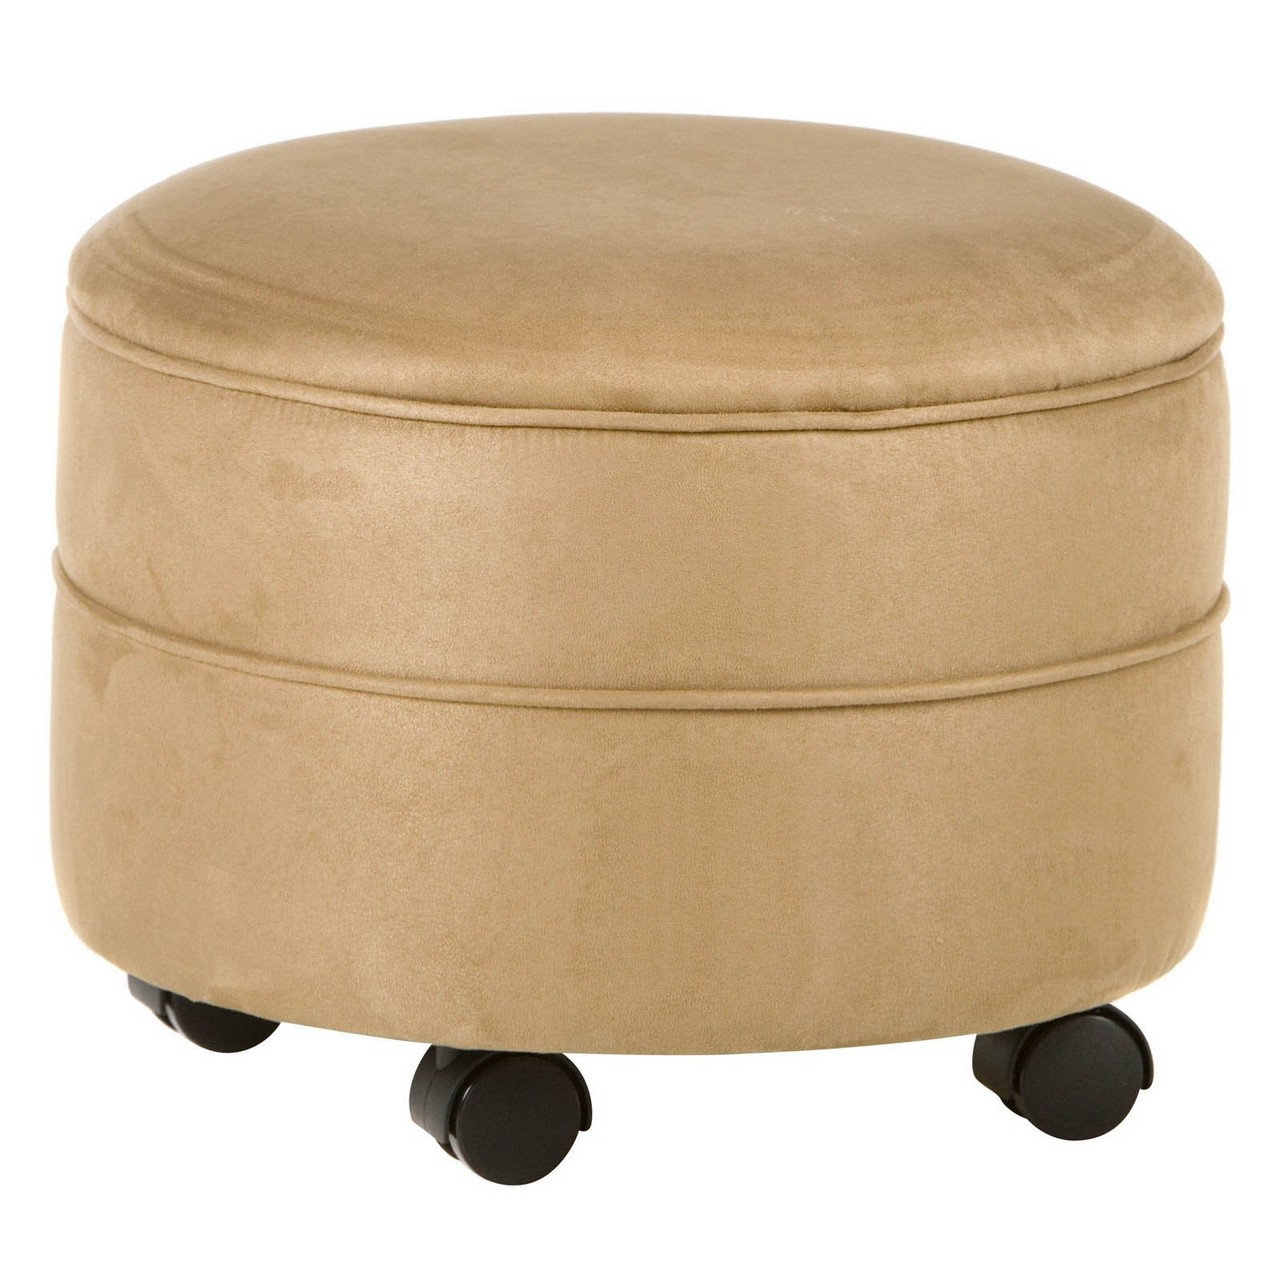 Round Leather Storage Ottoman Coffee Table | Ottoman with Shelf Underneath | Round Storage Ottoman